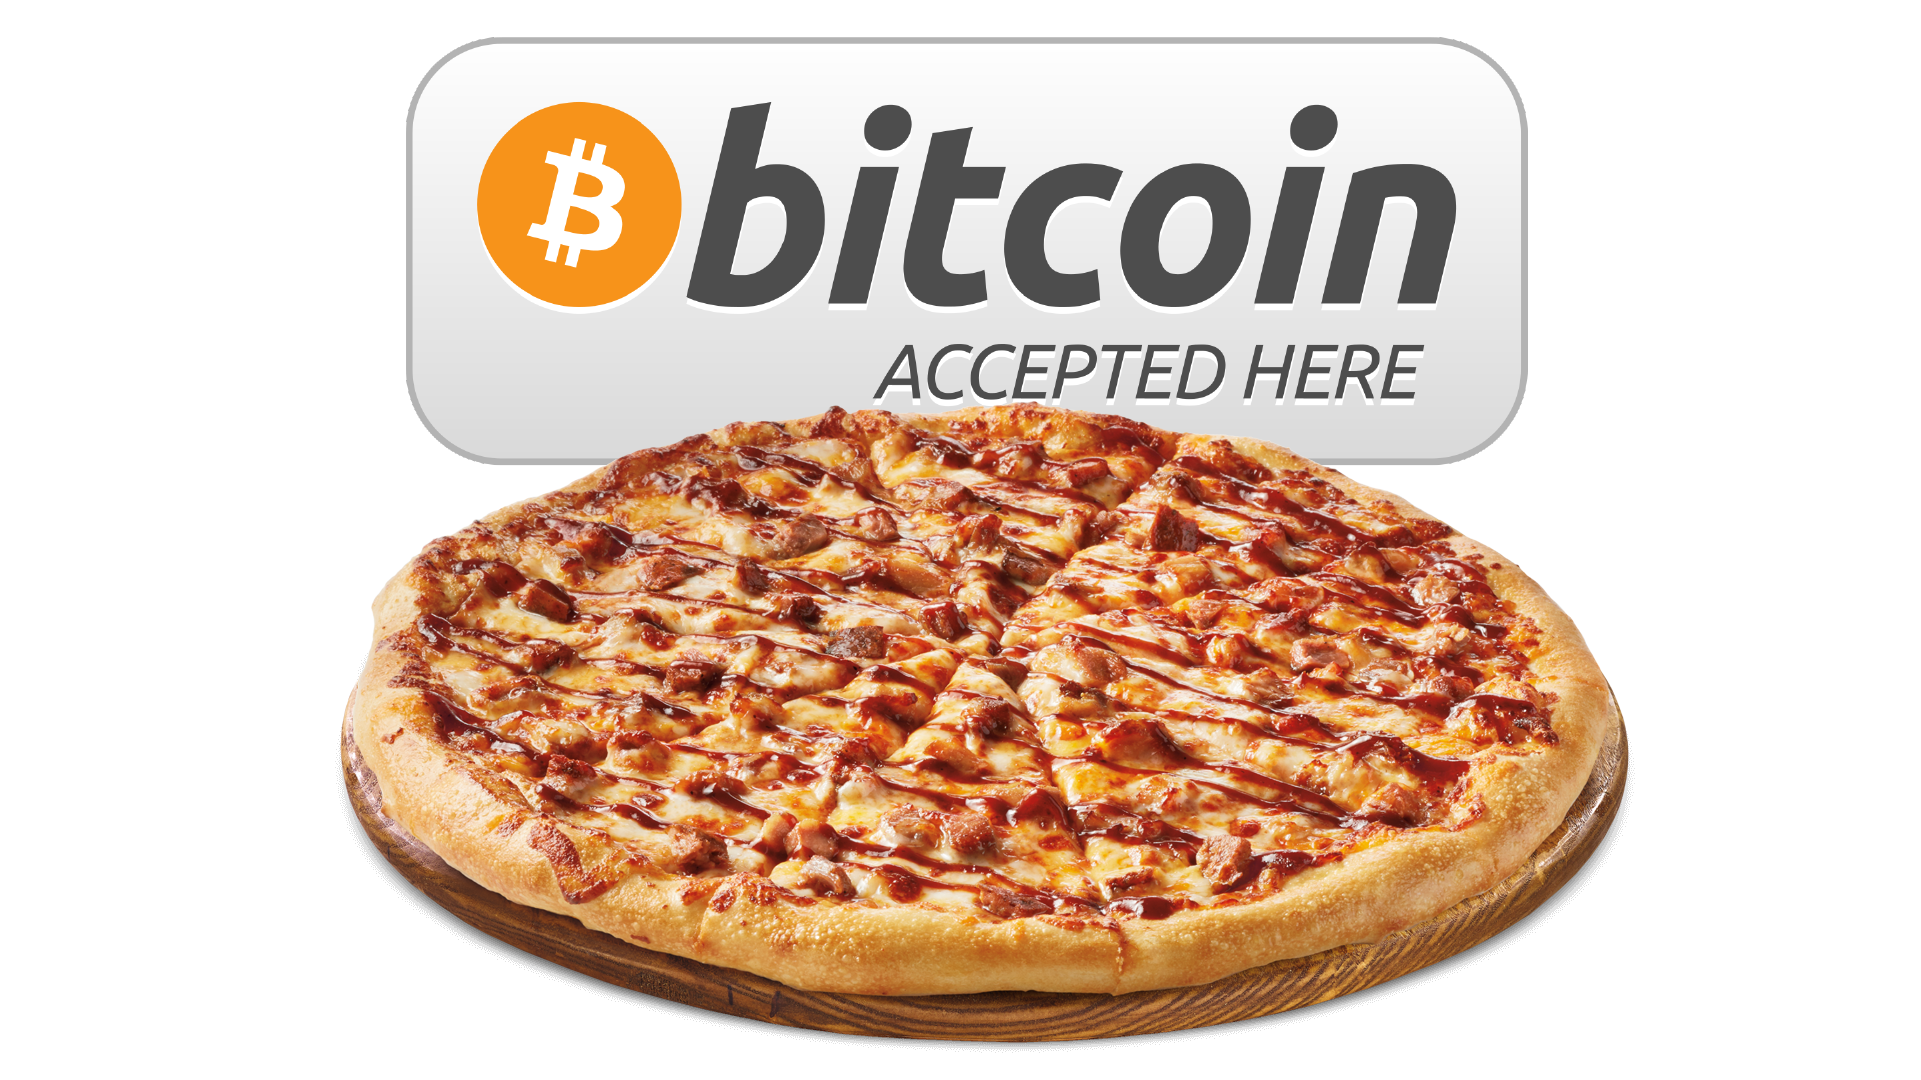 10 Years On, Laszlo Hanyecz Has No Regrets About His $45M Bitcoin Pizzas - CoinDesk